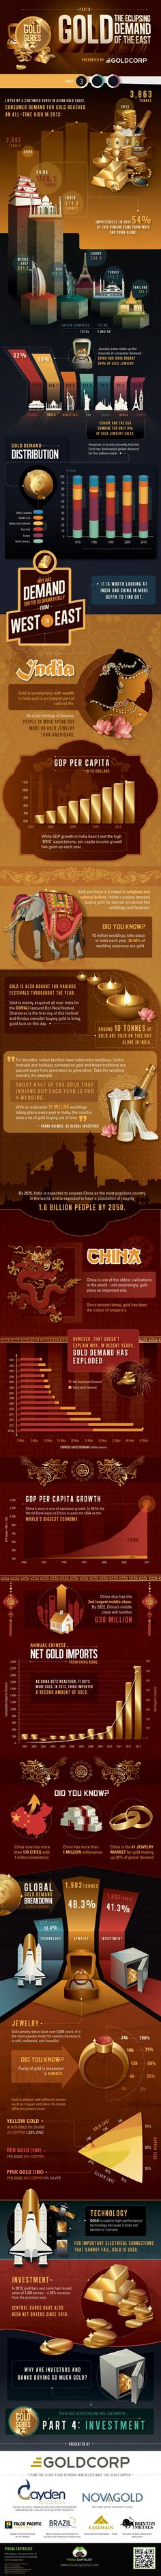 The Gold Series: The Eclipsing Demand of the East (Part 3 of 5) | Visual Capitalist